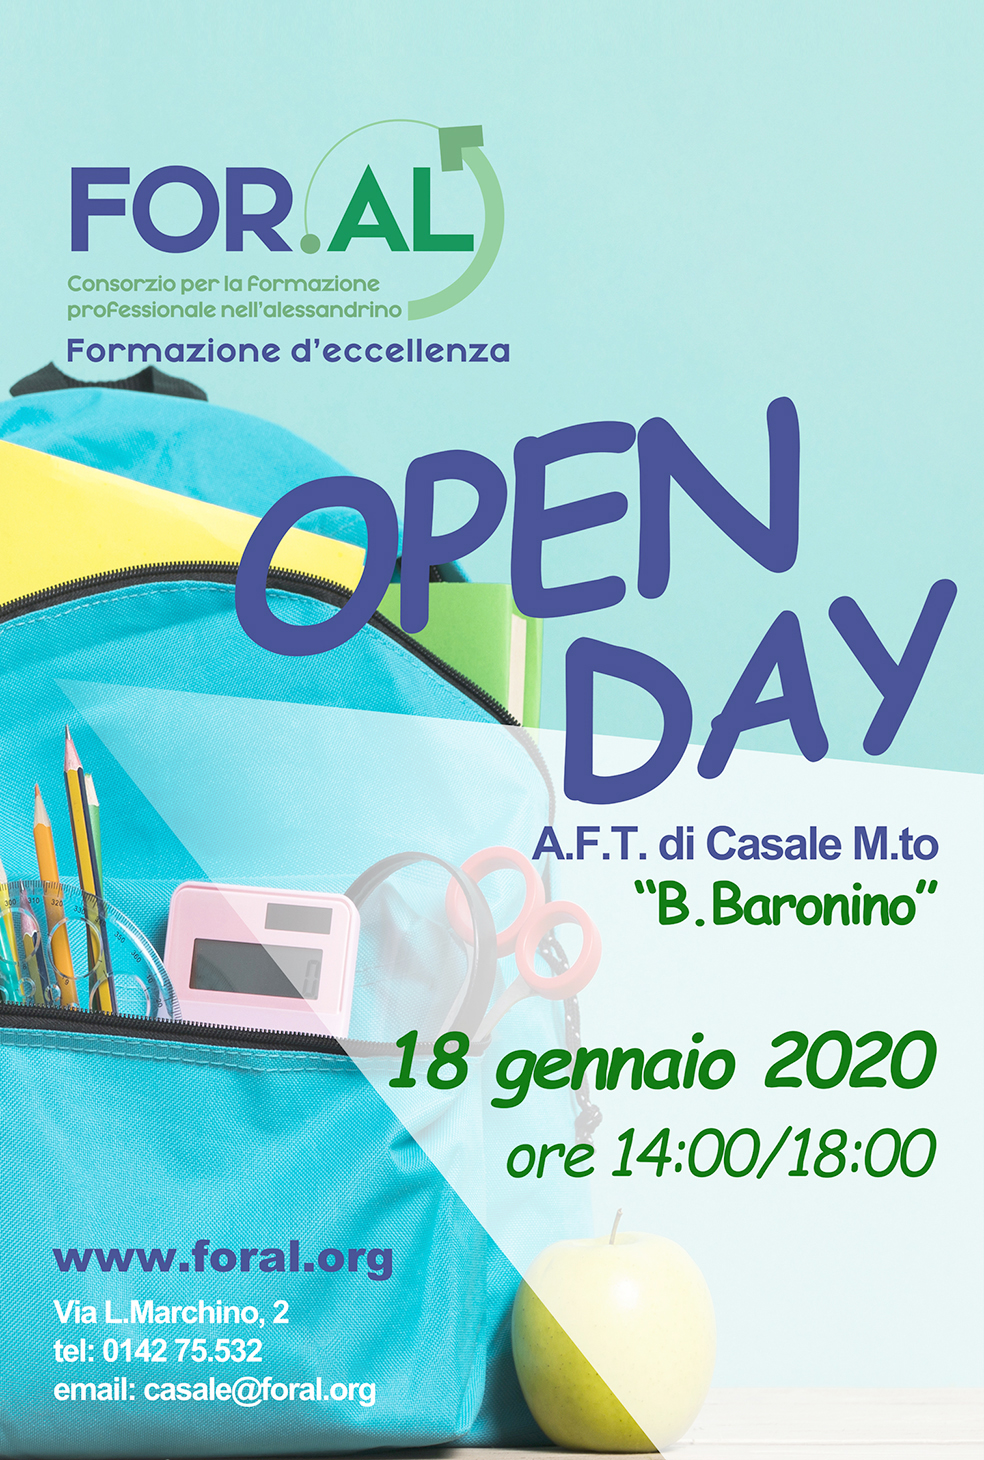 Foral Casale open day